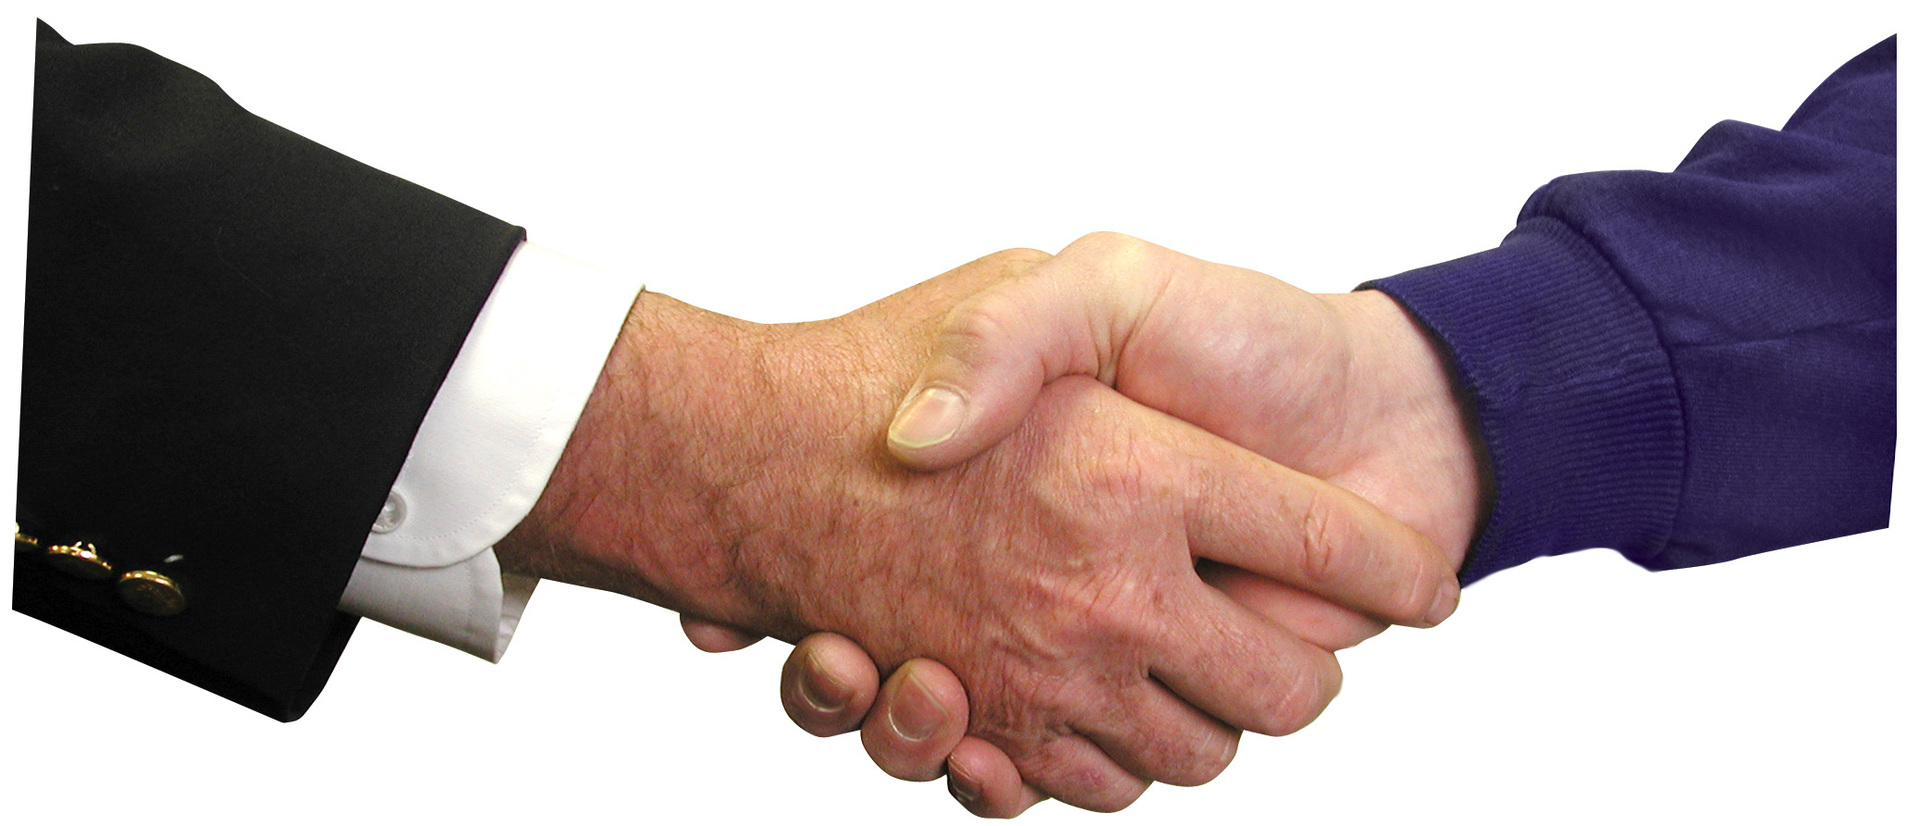 PIB Group acquires UK & Ireland Insurance Services. (Credit: Mike Johnson from FreeImages)